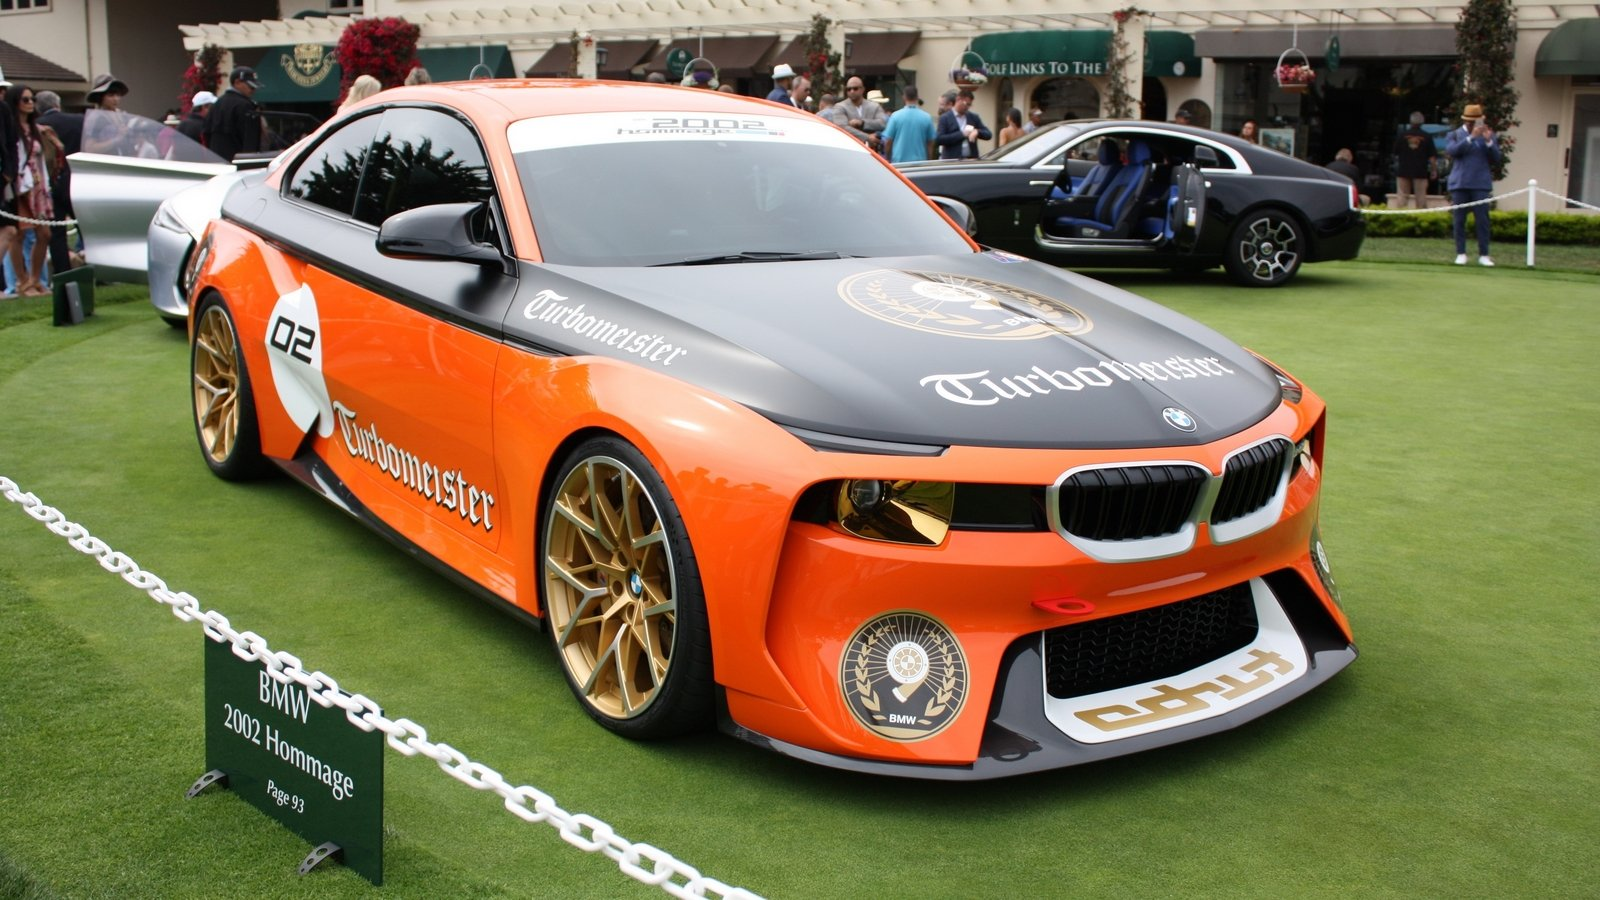 2016 bmw 2002 hommage review top speed. Black Bedroom Furniture Sets. Home Design Ideas